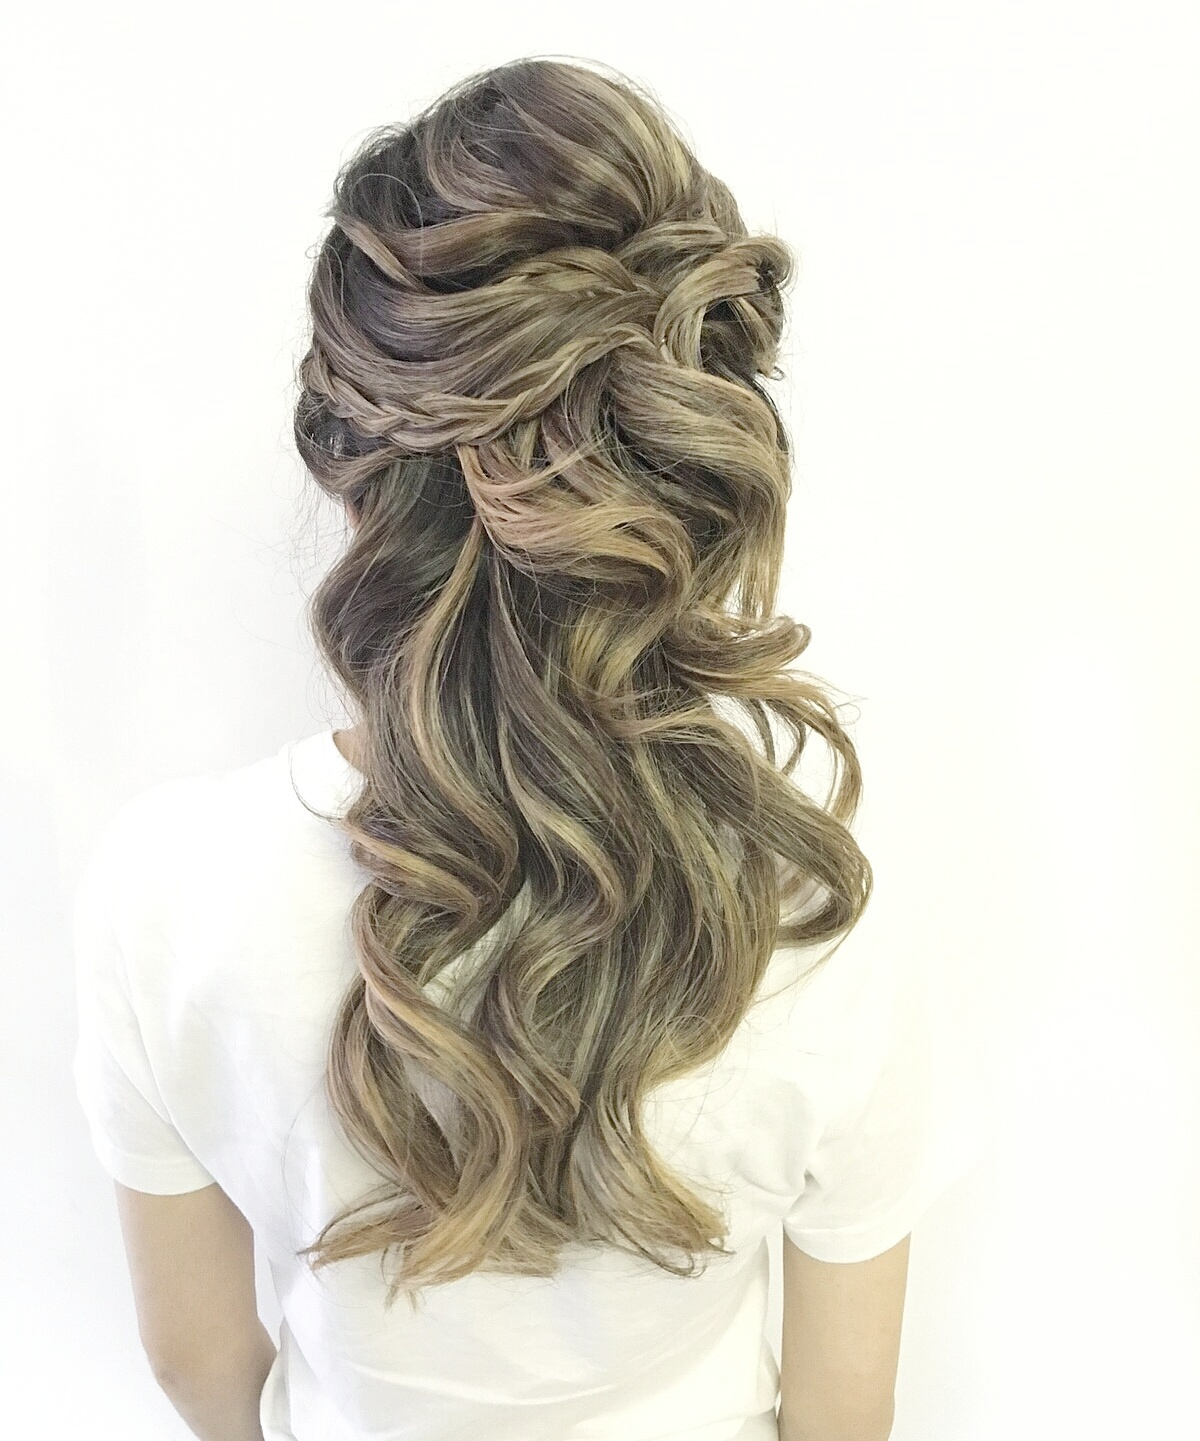 Hair by Judy Lim9_160507